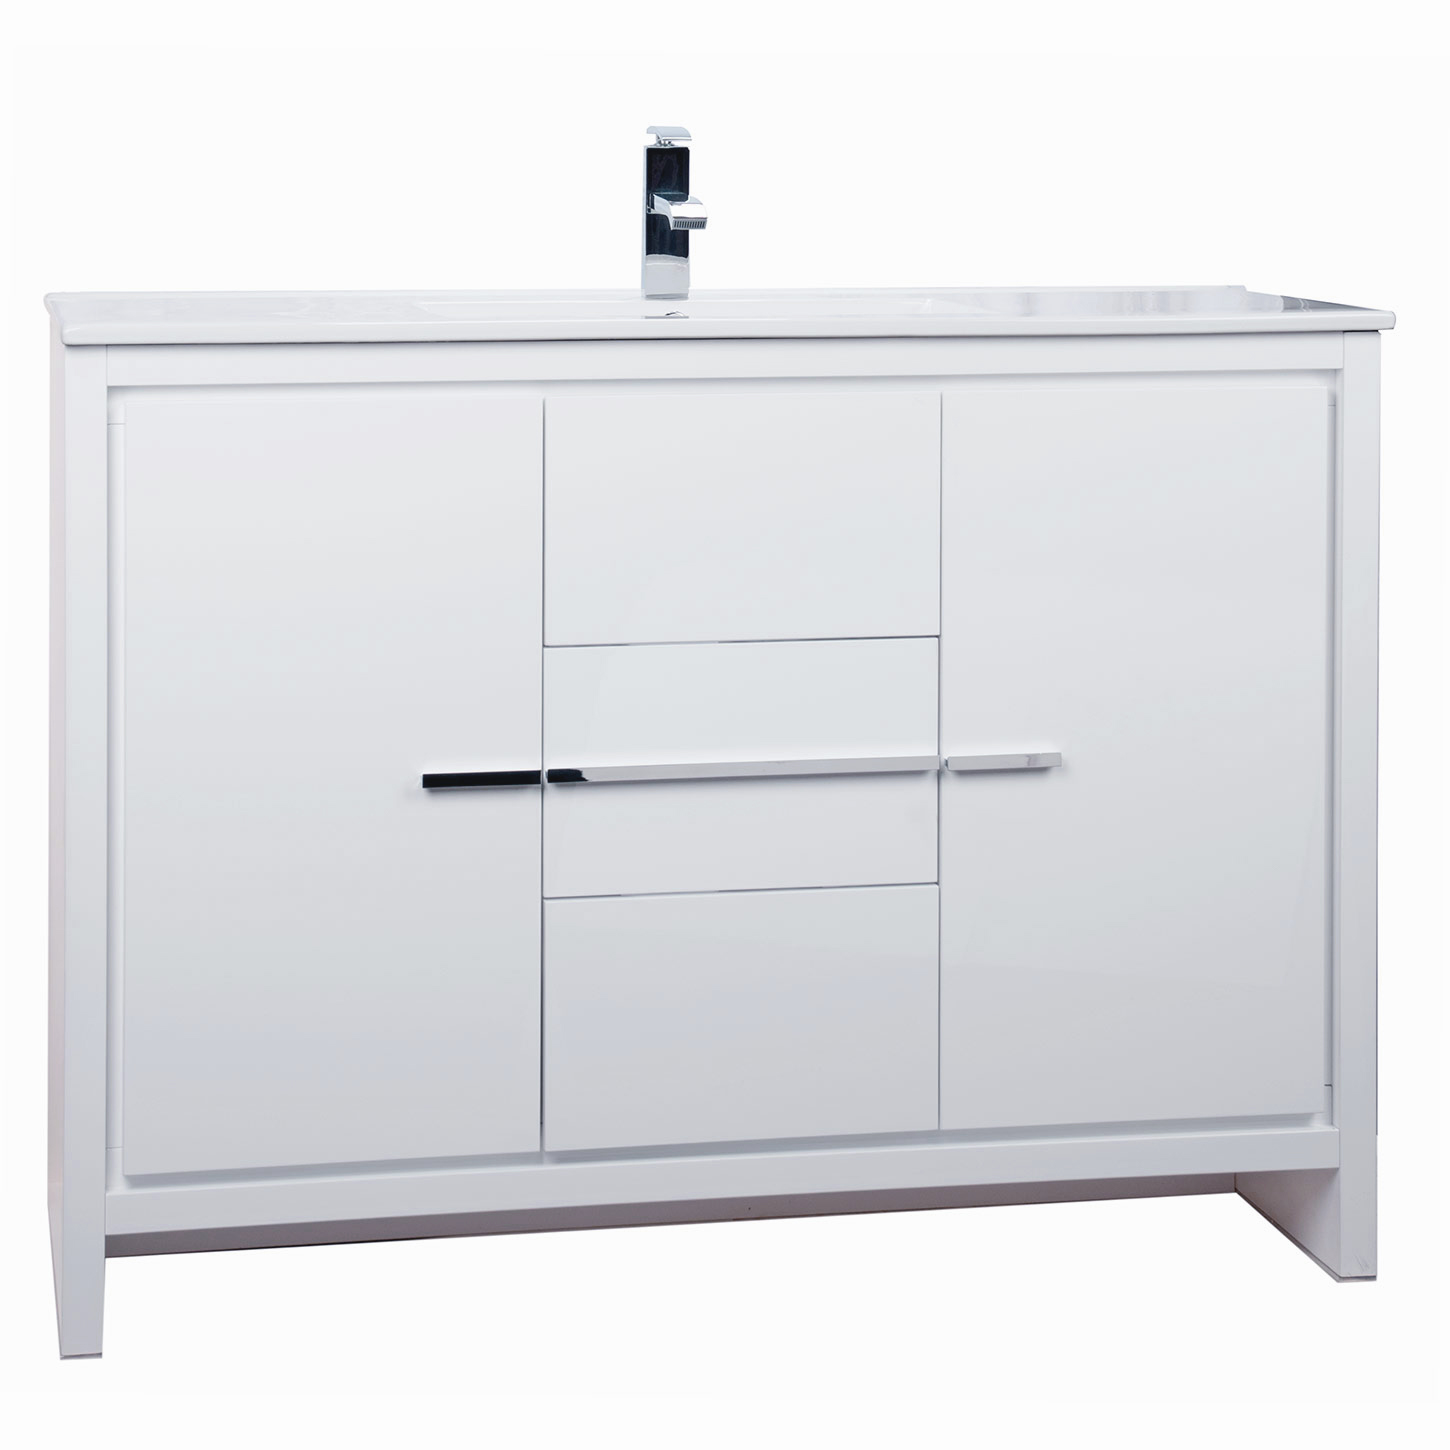 CBI Enna 48 Inch Modern Bathroom Vanity High Gloss White TN LA1200C HGW